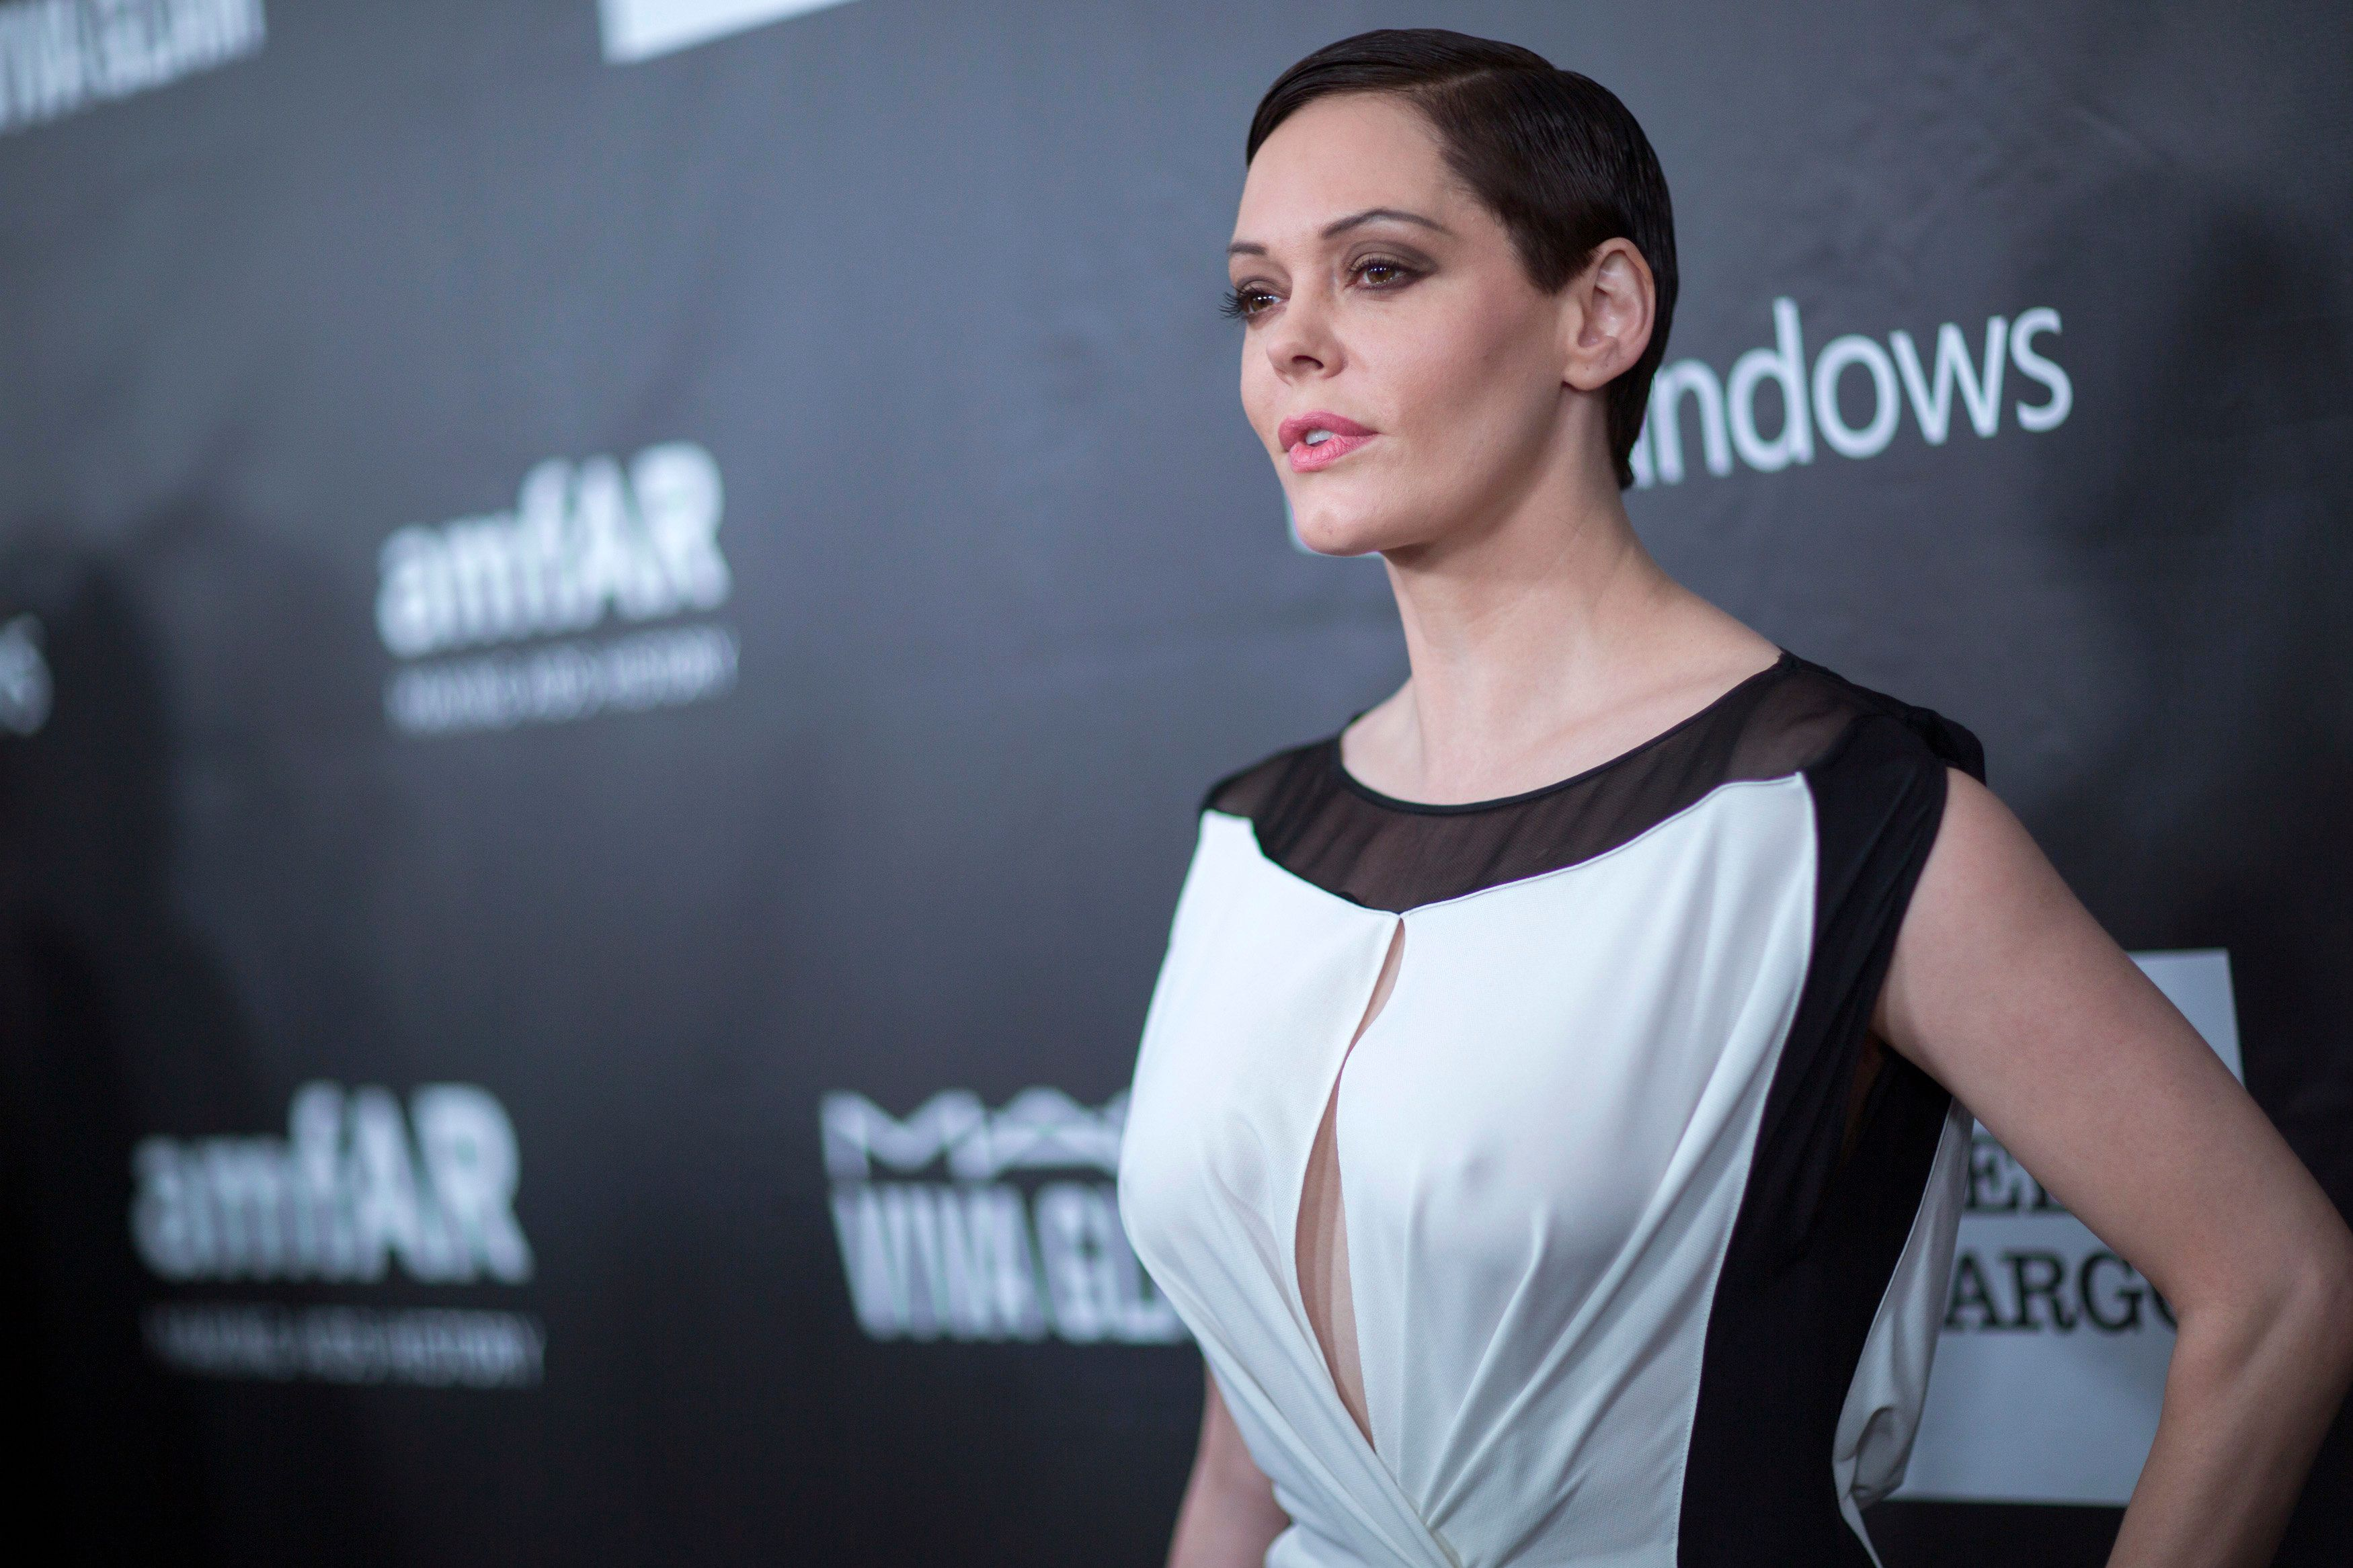 Twitter suspends Rose McGowan's account after Ben Affleck tweets